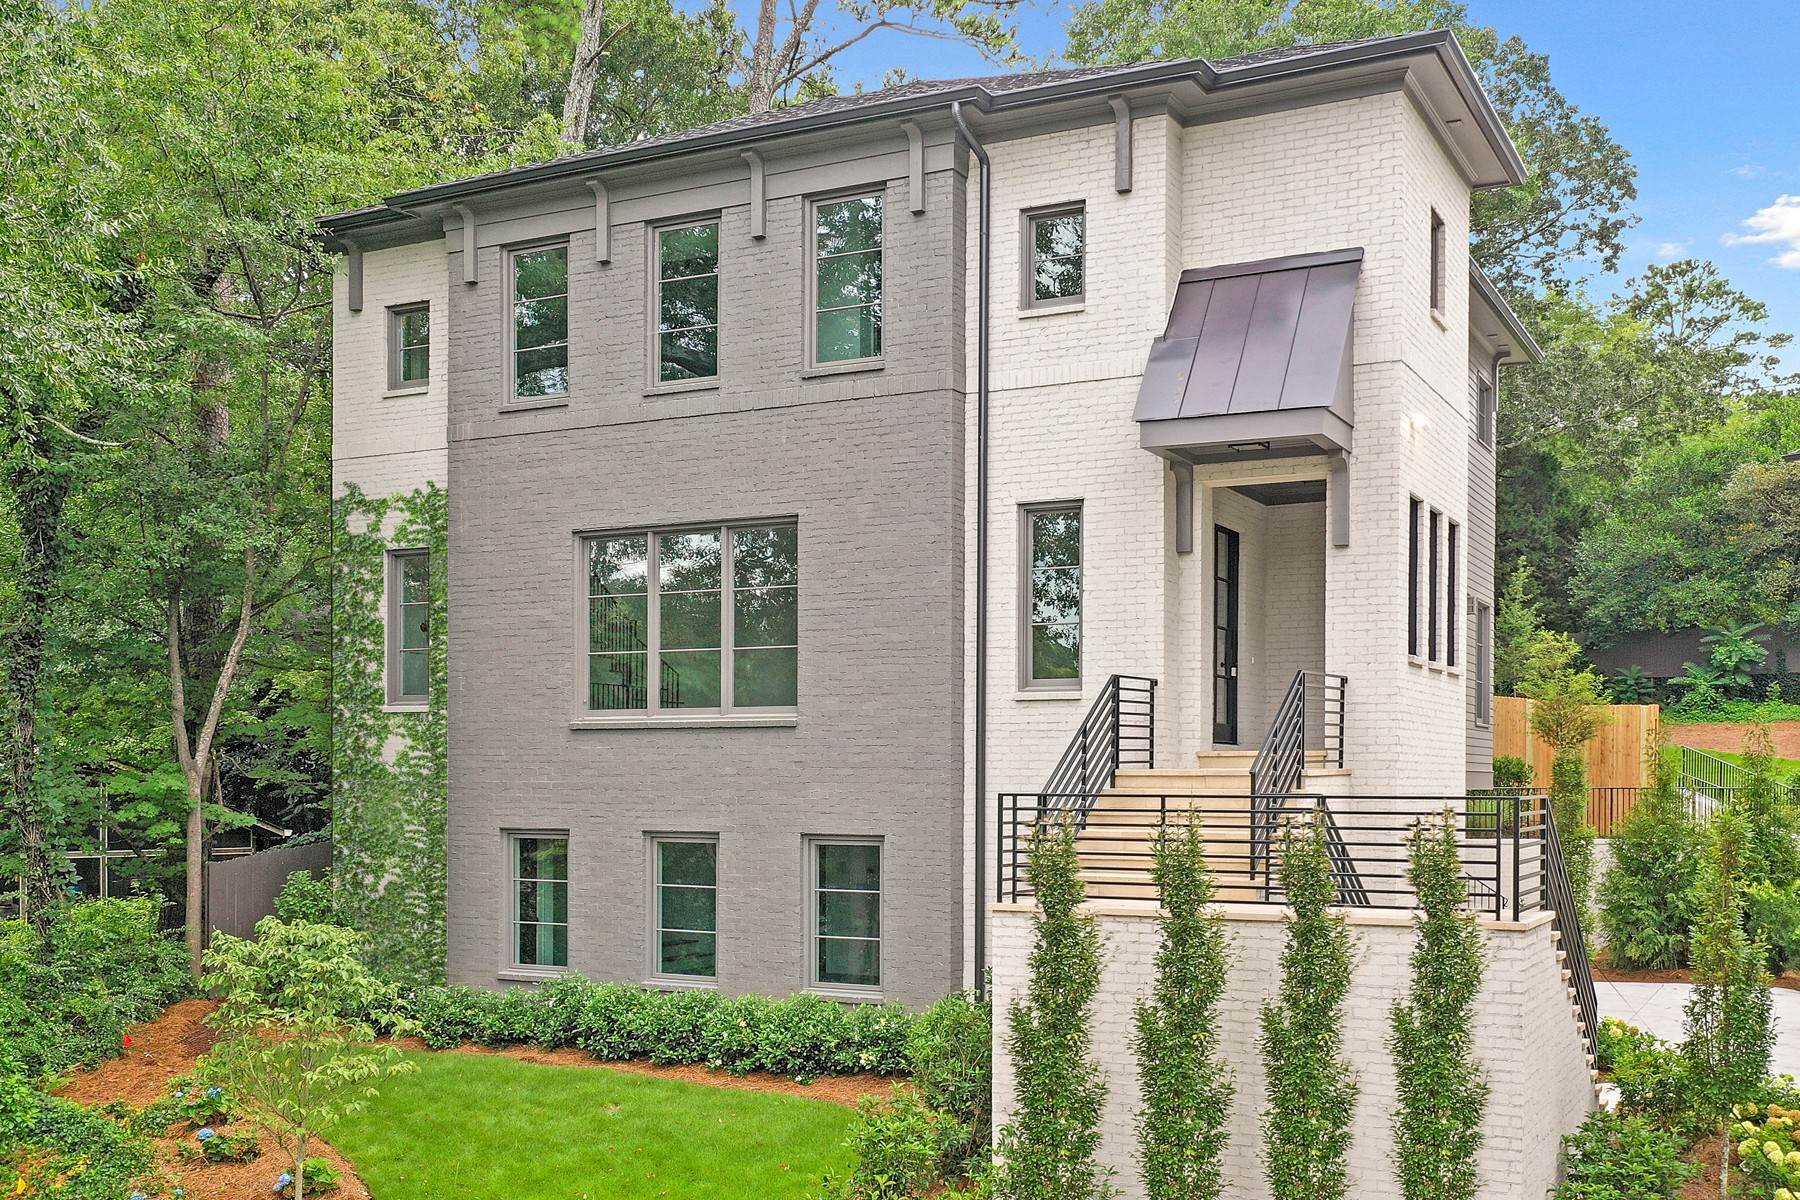 Single Family Homes for Sale at Impressive New Home by John Willis Custom Homes 1785 Noble Drive NE Atlanta, Georgia 30306 United States